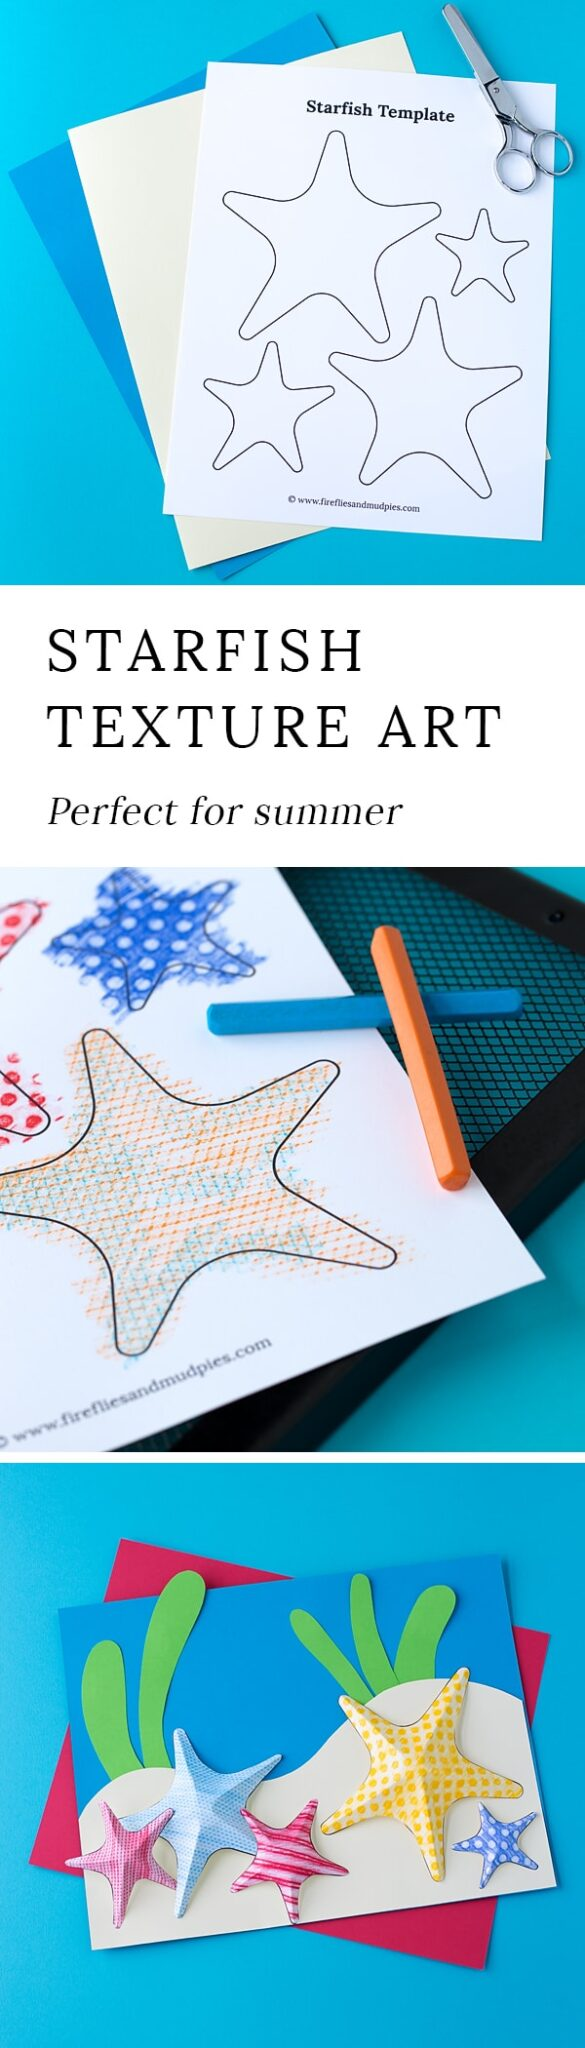 Summer is the perfect season for creating Starfish Texture Art with kids. This easy craft contains a free template, making it perfect for home or school.